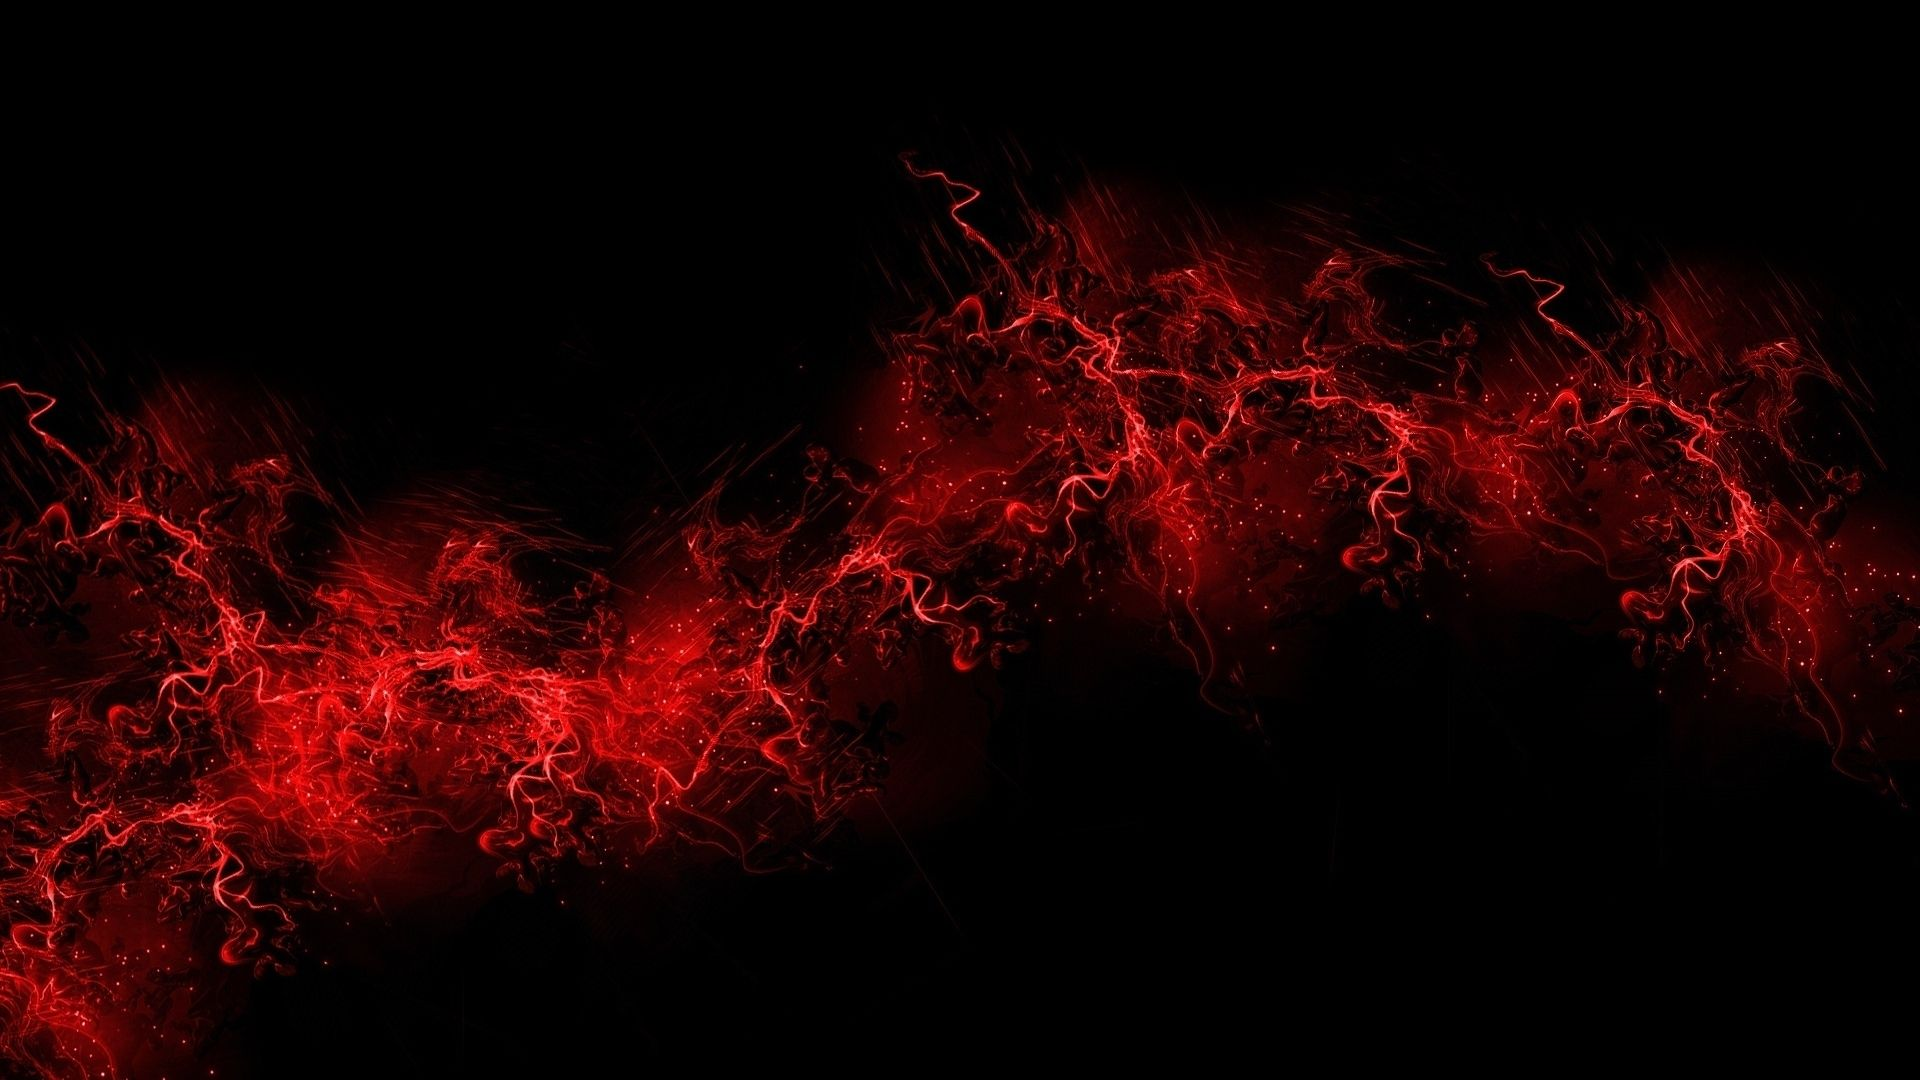 Black And Red Wallpapers Hd Wallpaper 1600 1200 Black And Red Abstract Wallpapers 73 Wallpapers Red And Black Wallpaper Dark Red Wallpaper Black Wallpaper